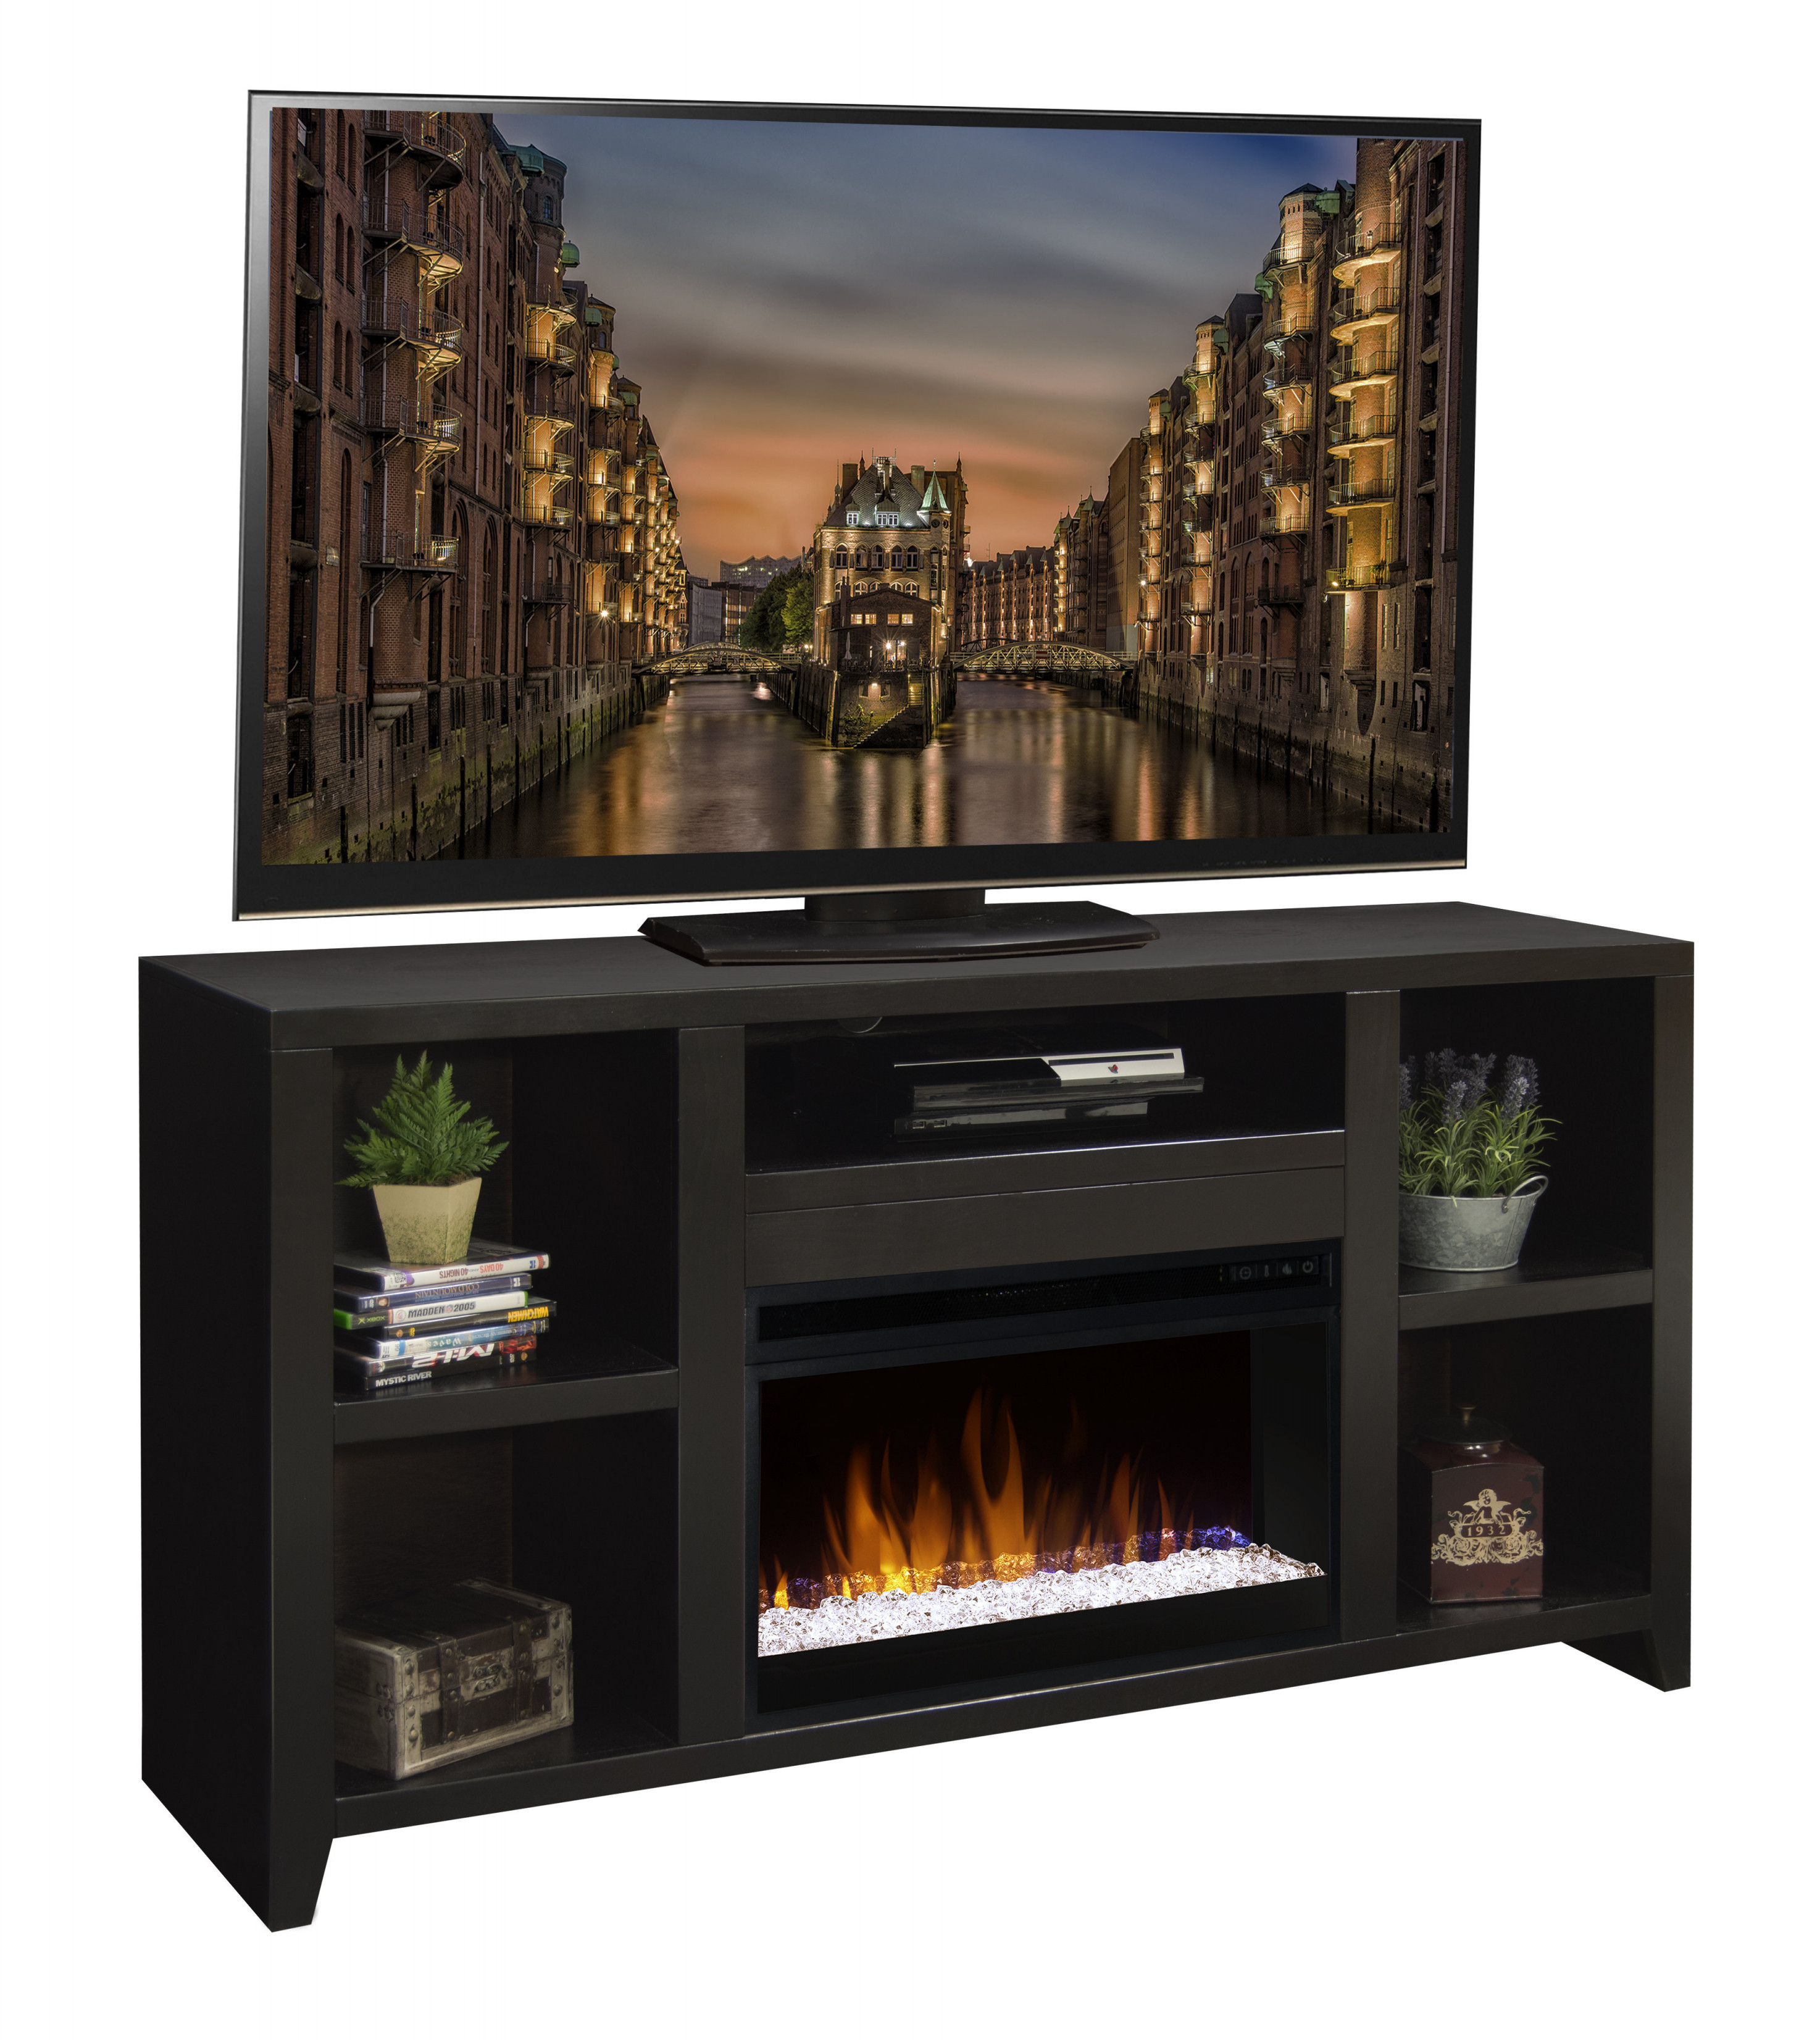 55 Inch Corner Tv Stand with Fireplace Lovely Corner Tv Stands Corner Tv Stand with Mount for 55 Elegant